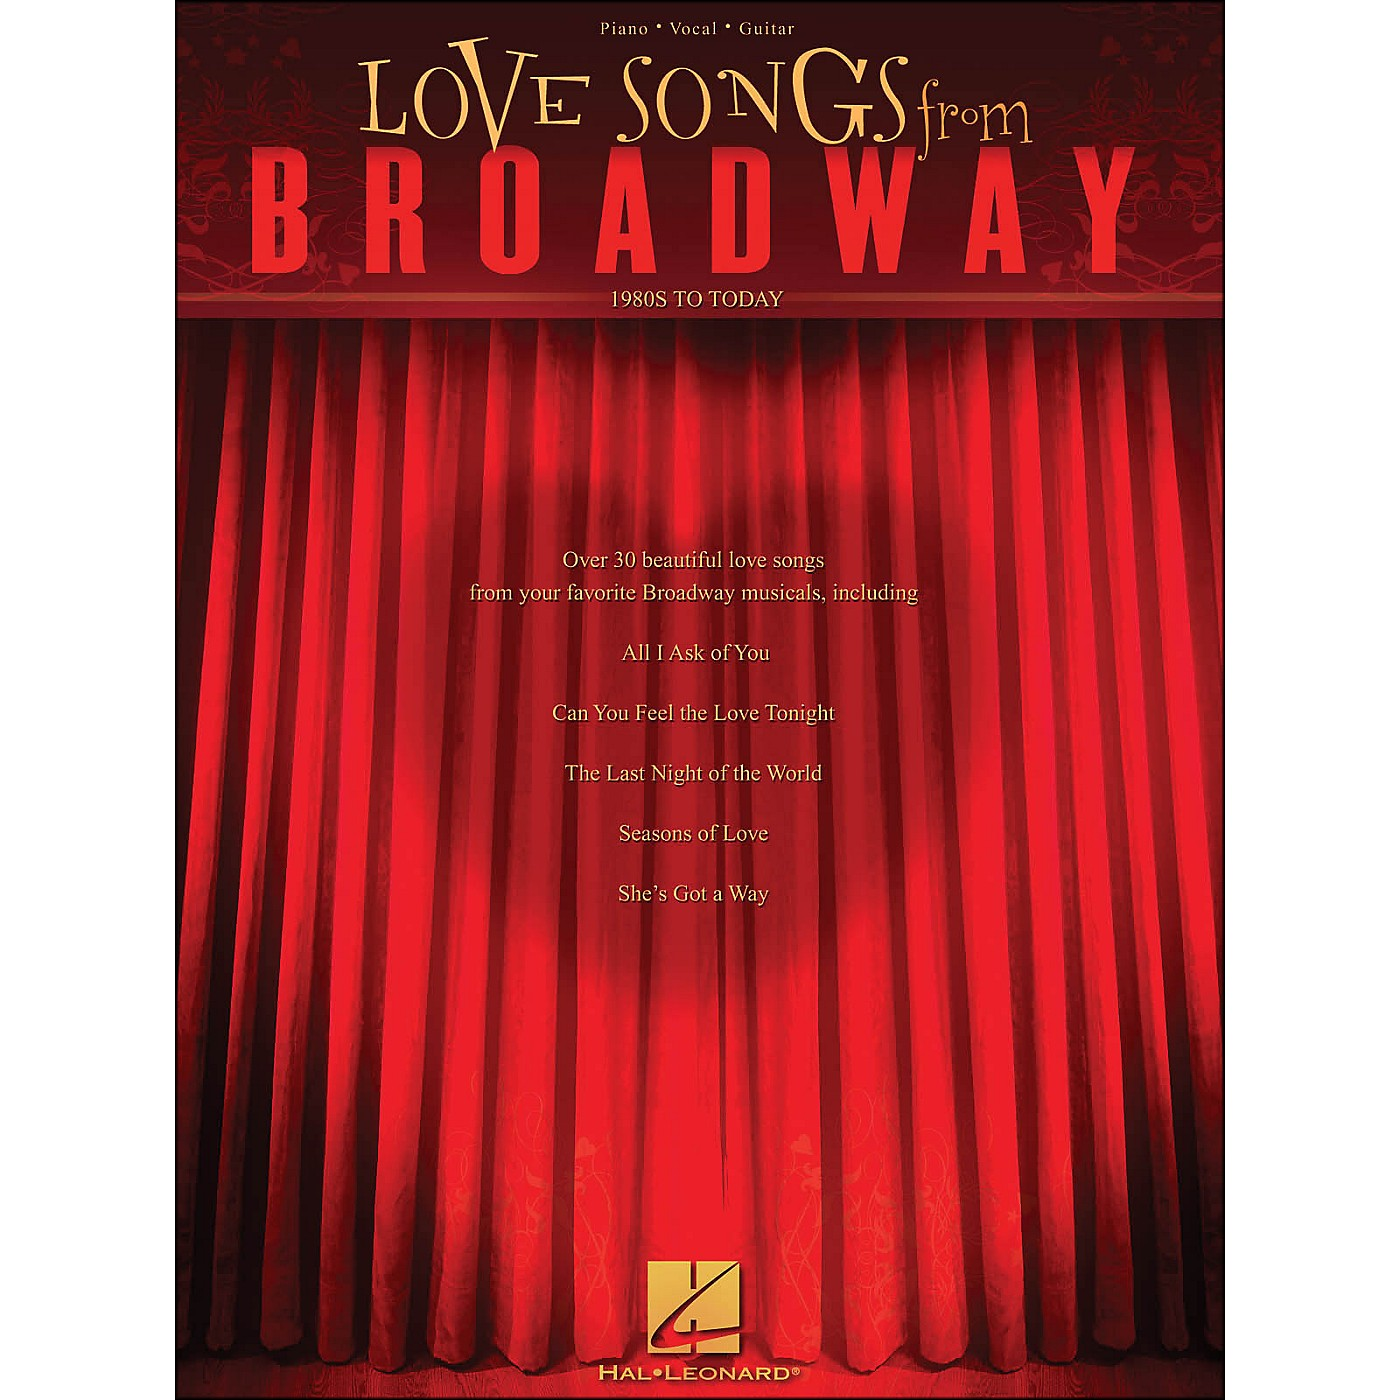 Hal Leonard Love Songs From Broadway - 1980s To Today arranged for piano, vocal, and guitar (P/V/G) thumbnail